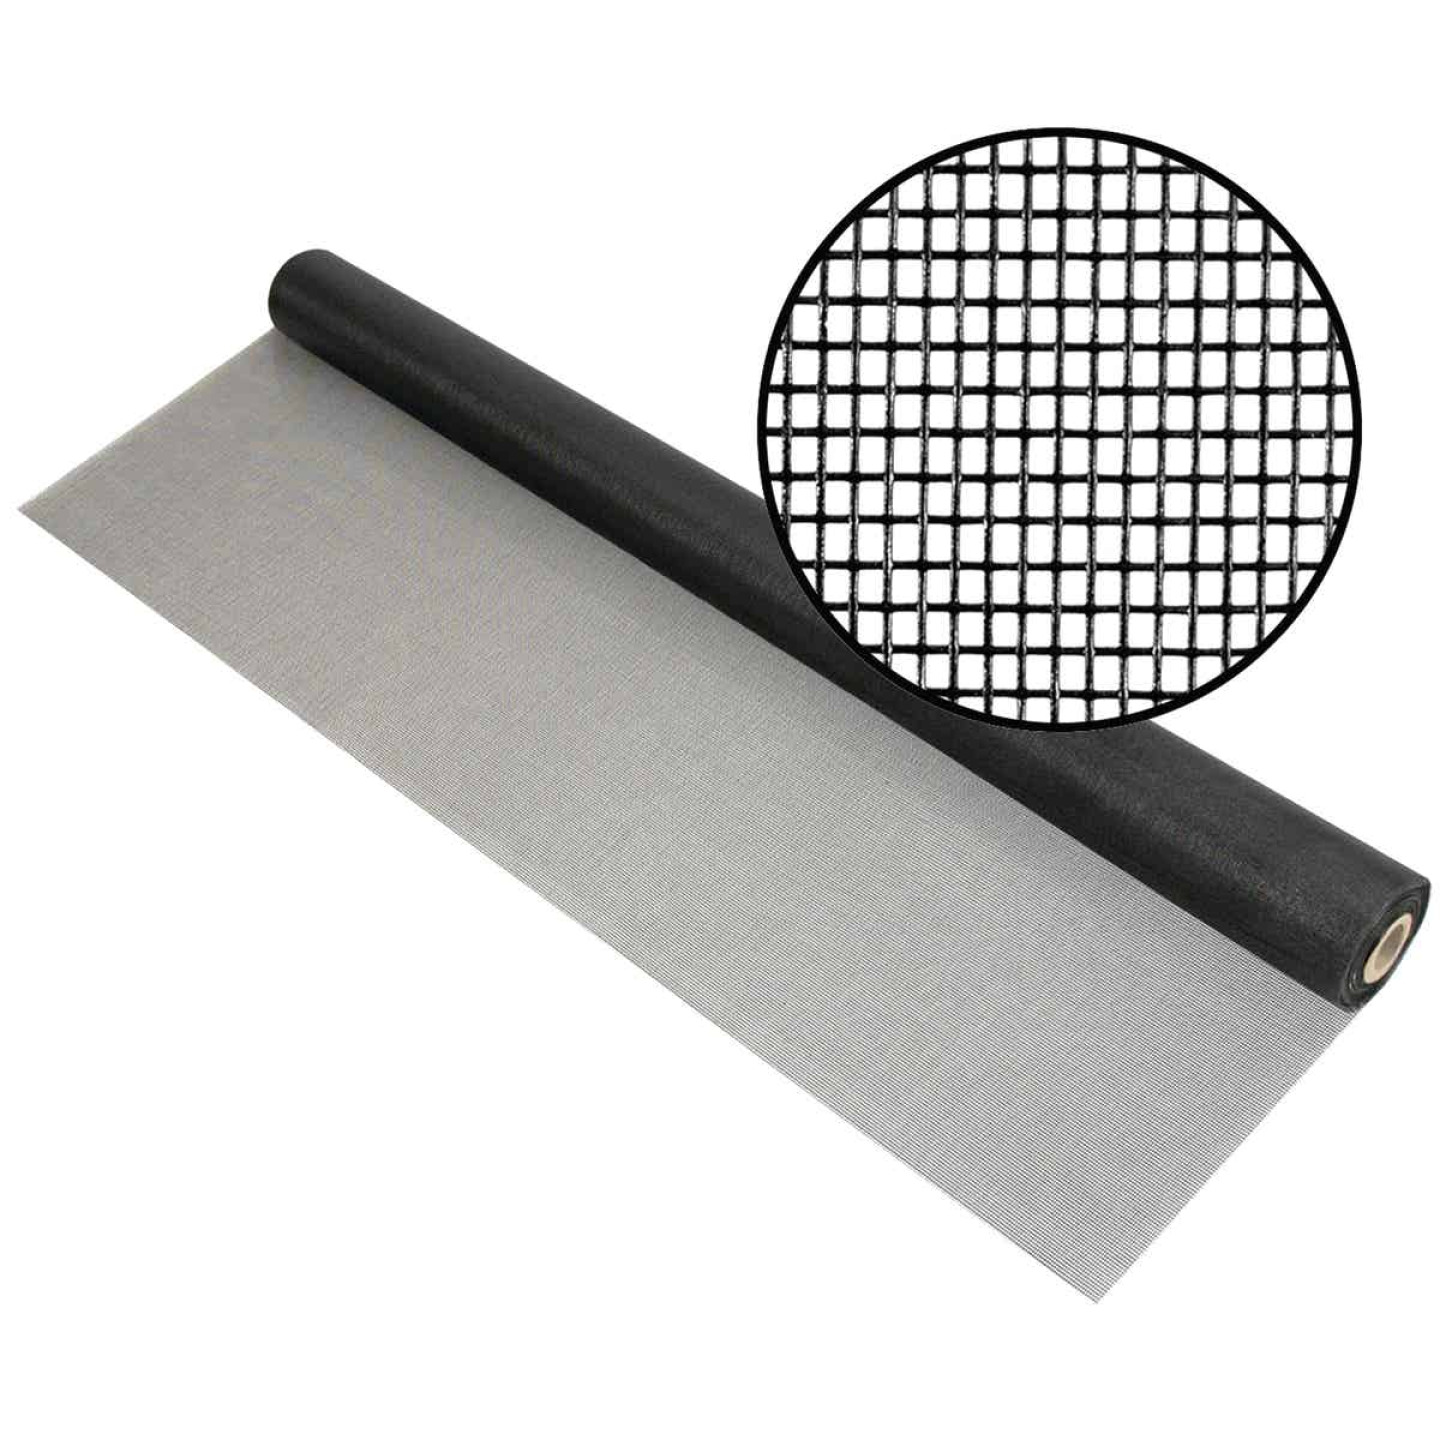 Phifer 60 In. x 100 Ft. Charcoal Fiberglass Pool Screen Image 1